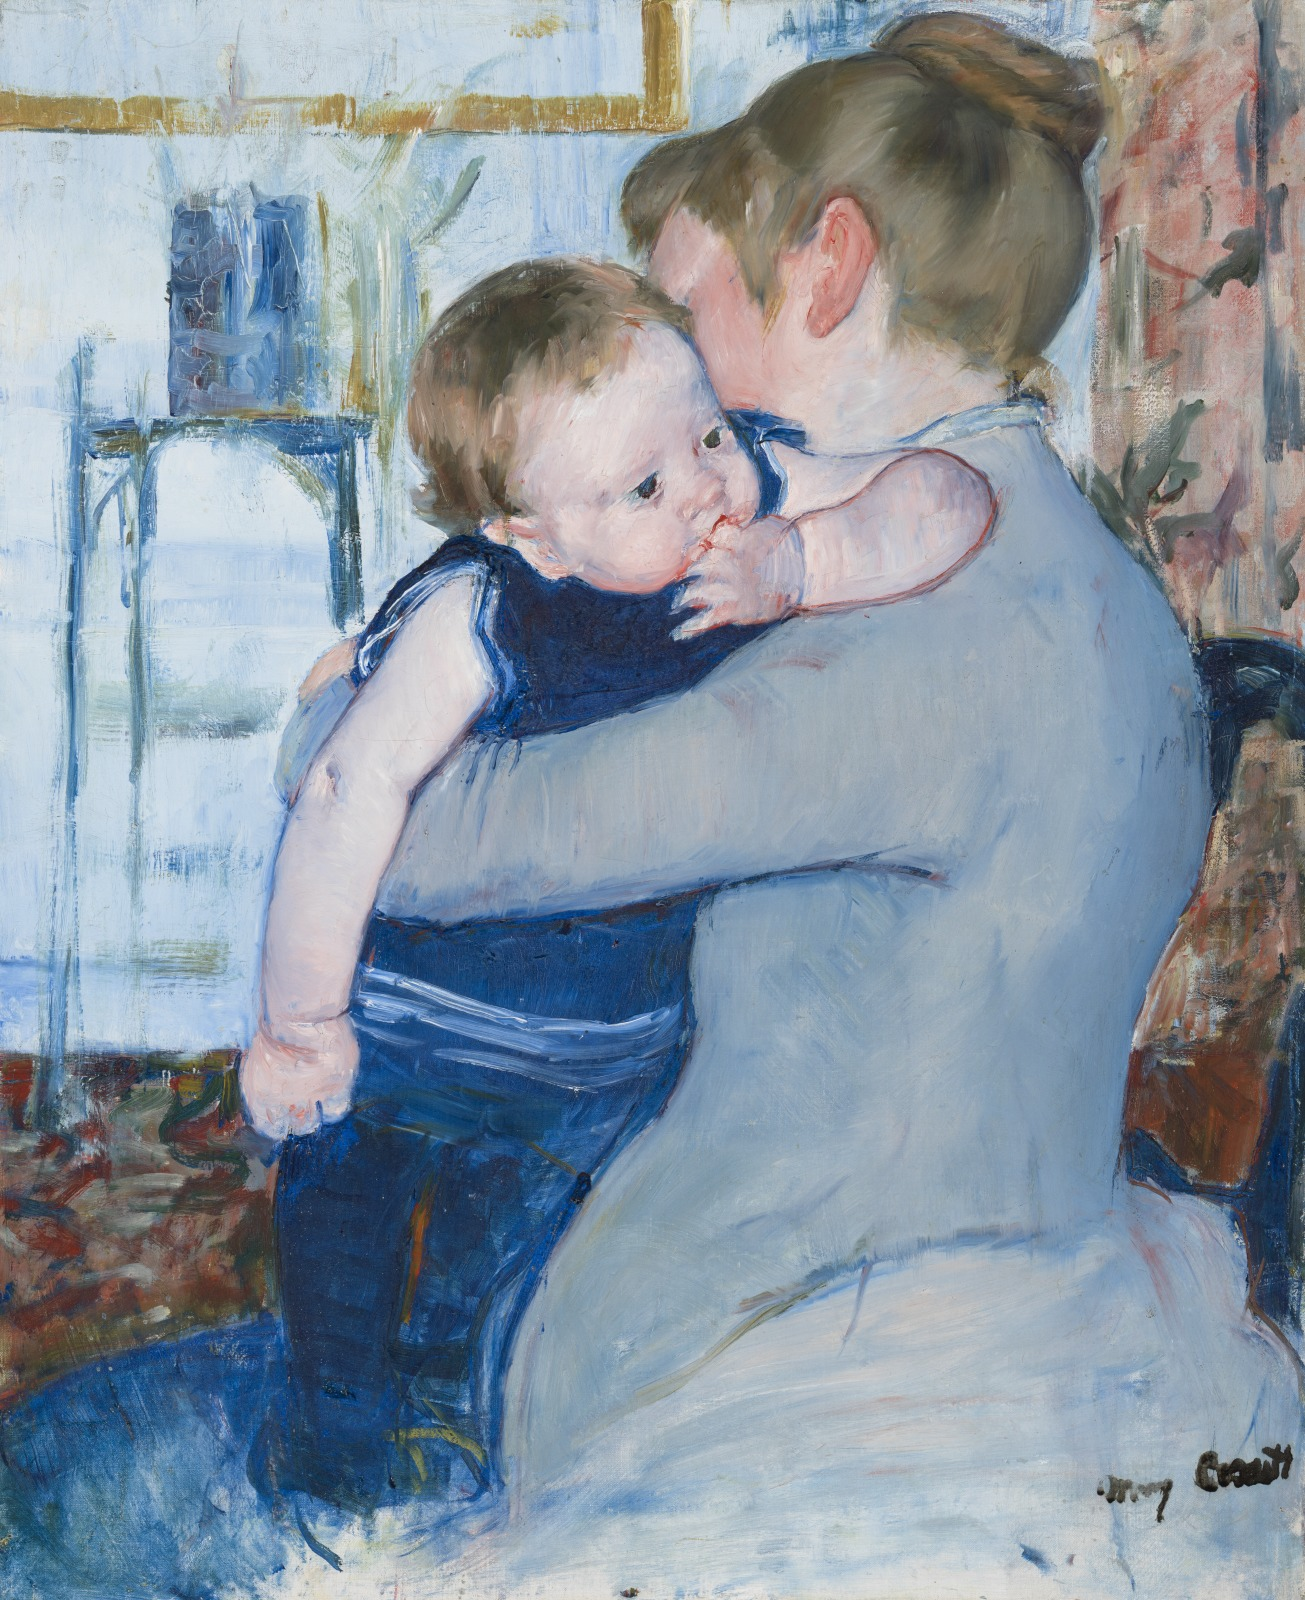 Baby in Dark Blue Suit, Looking Over His Mother's Shoulder